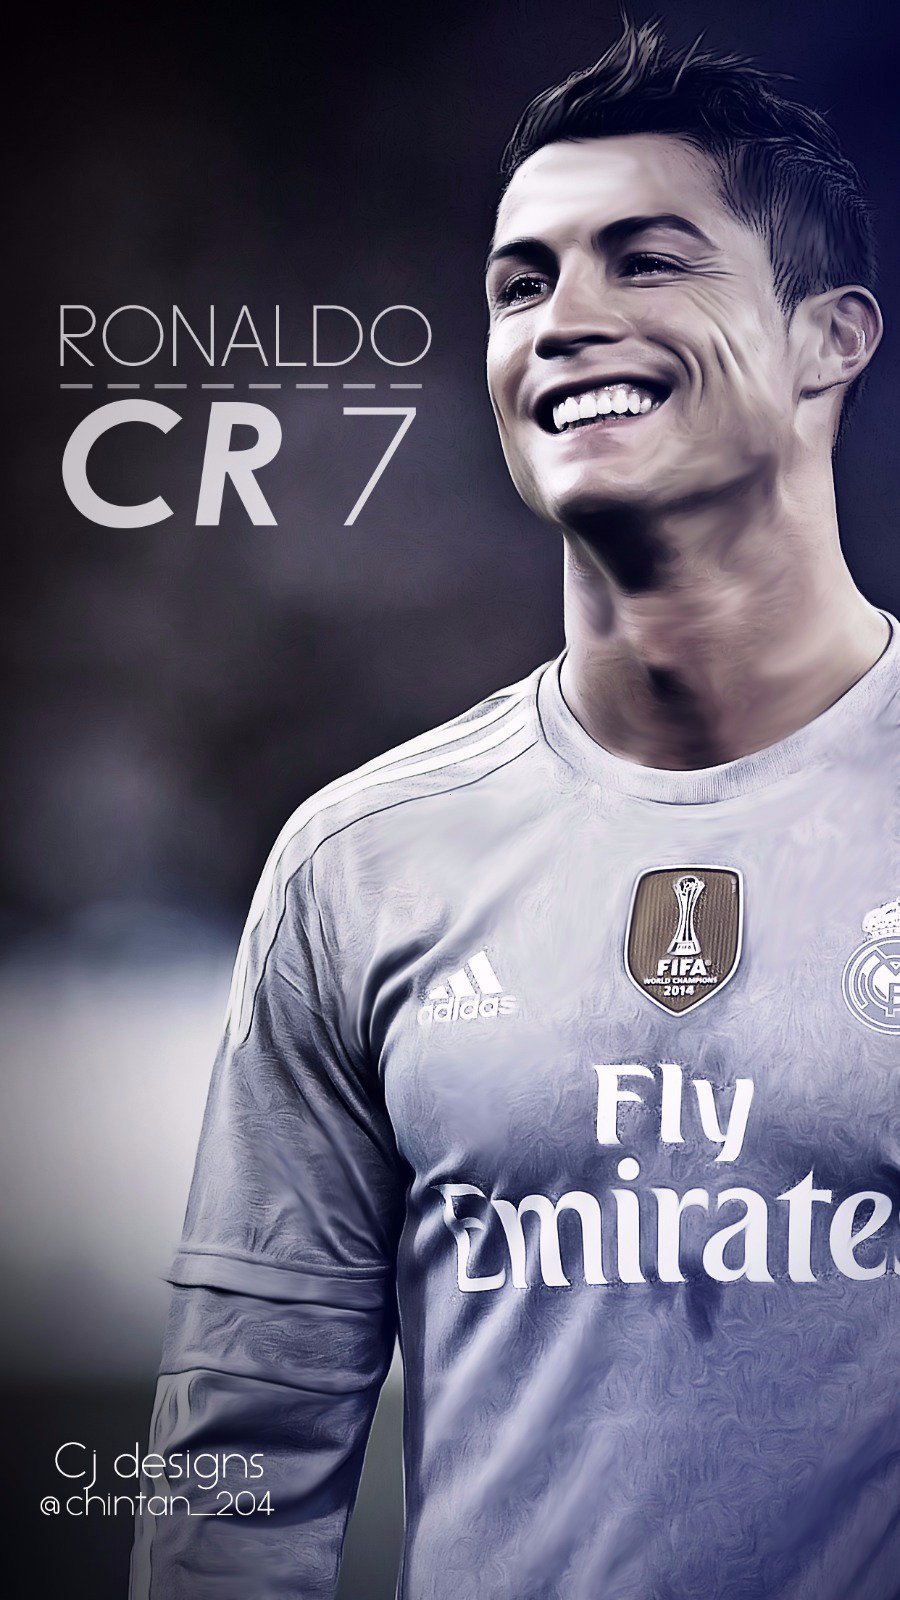 cj designs on twitter cristiano ronaldo phone. Black Bedroom Furniture Sets. Home Design Ideas